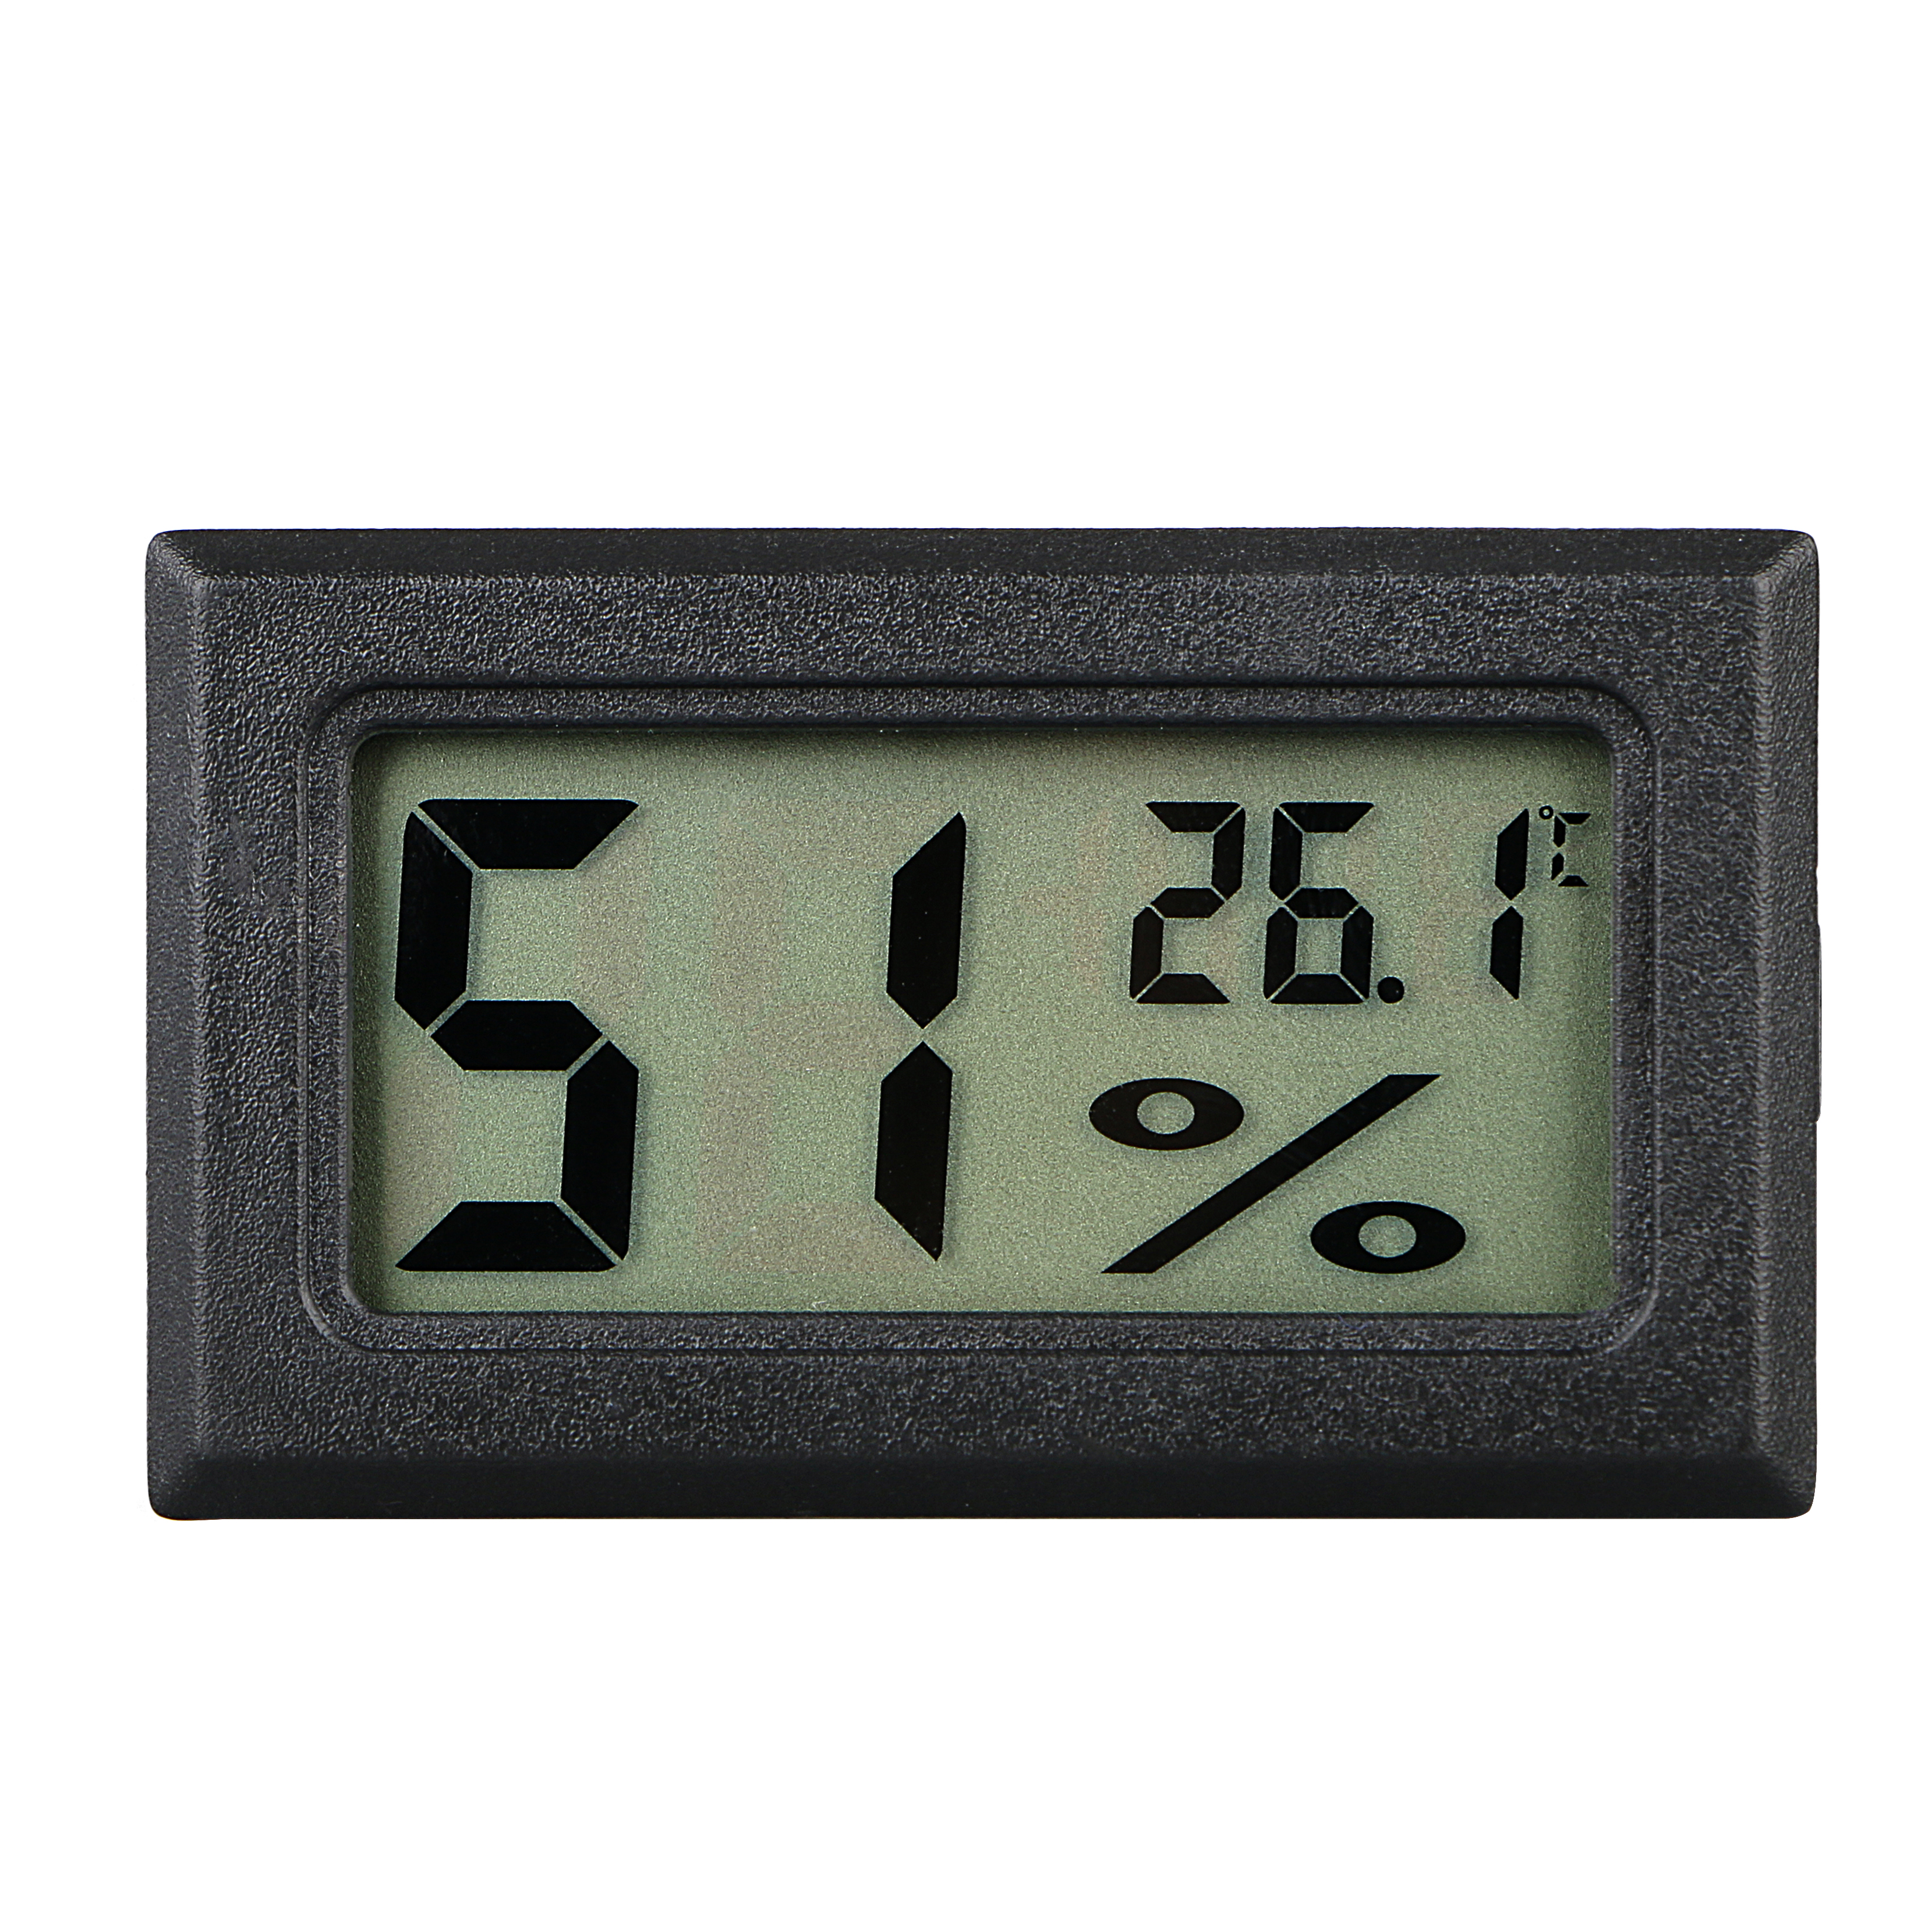 TSV Digital LCD Indoor Temperature Humidity Meter Gauge Thermometer Hygrometer